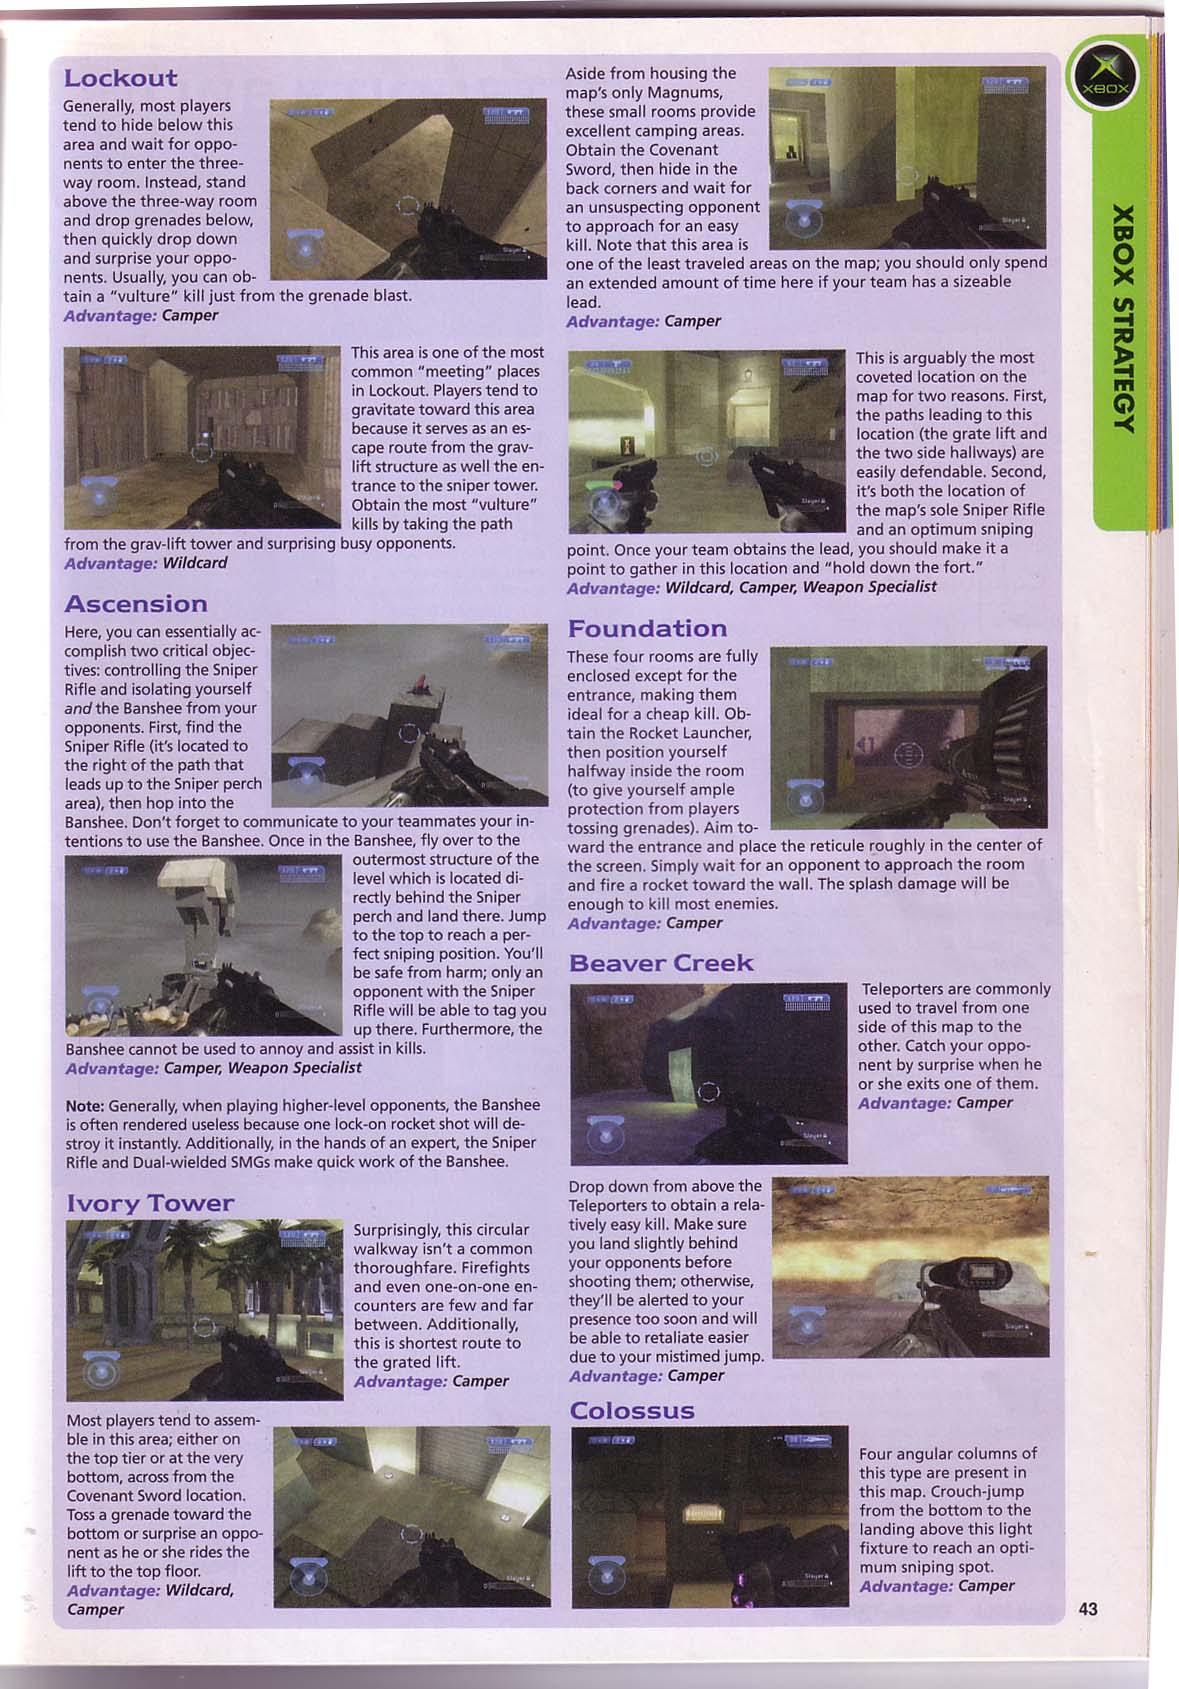 TipsandTricks_April_2005_Halo_pg2_Strategy.jpg